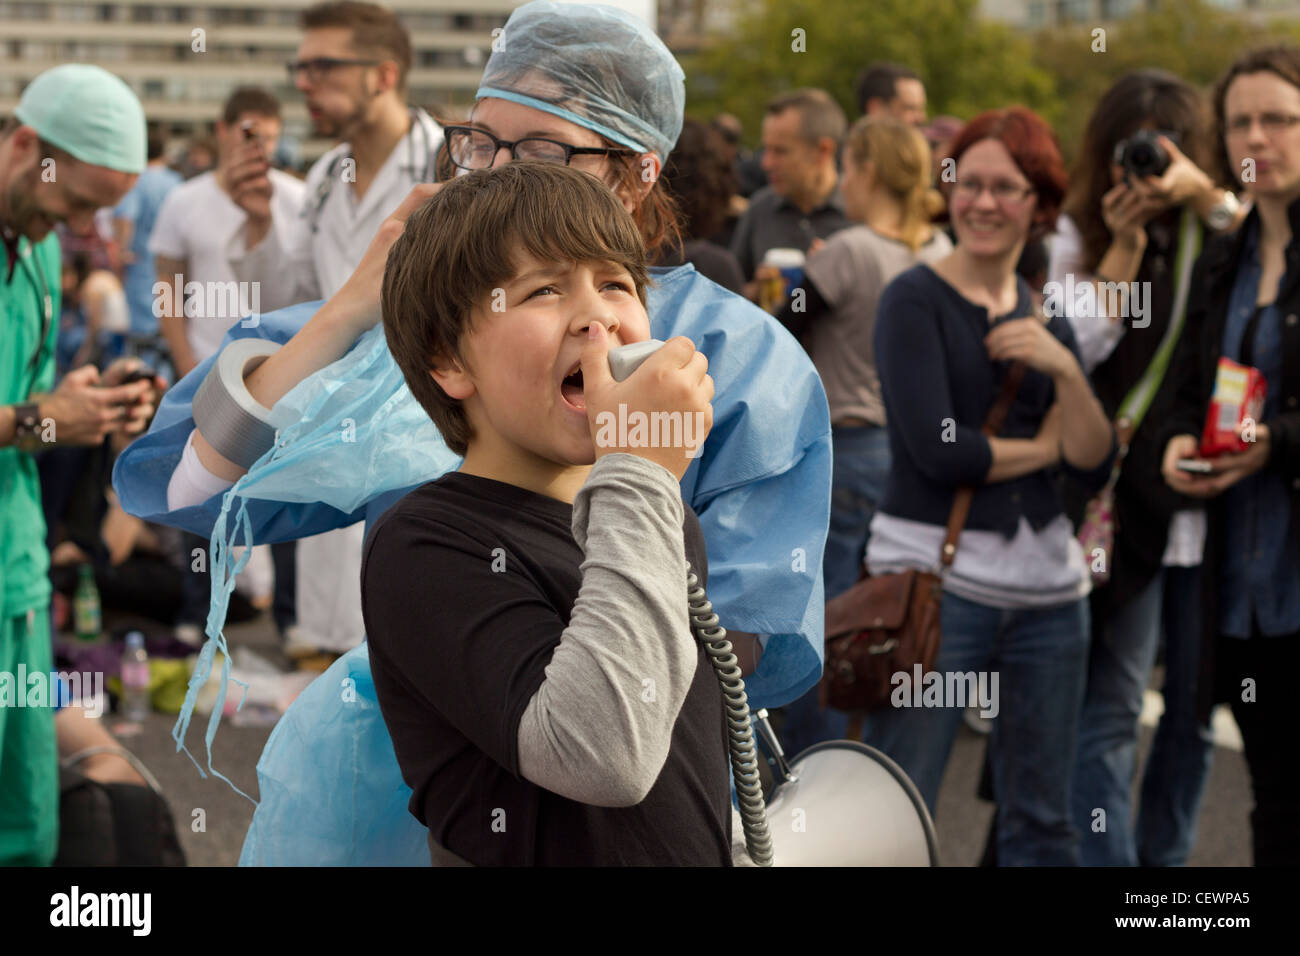 A young boy seen here shouting slogan against reforms to the National Health Service - Stock Image